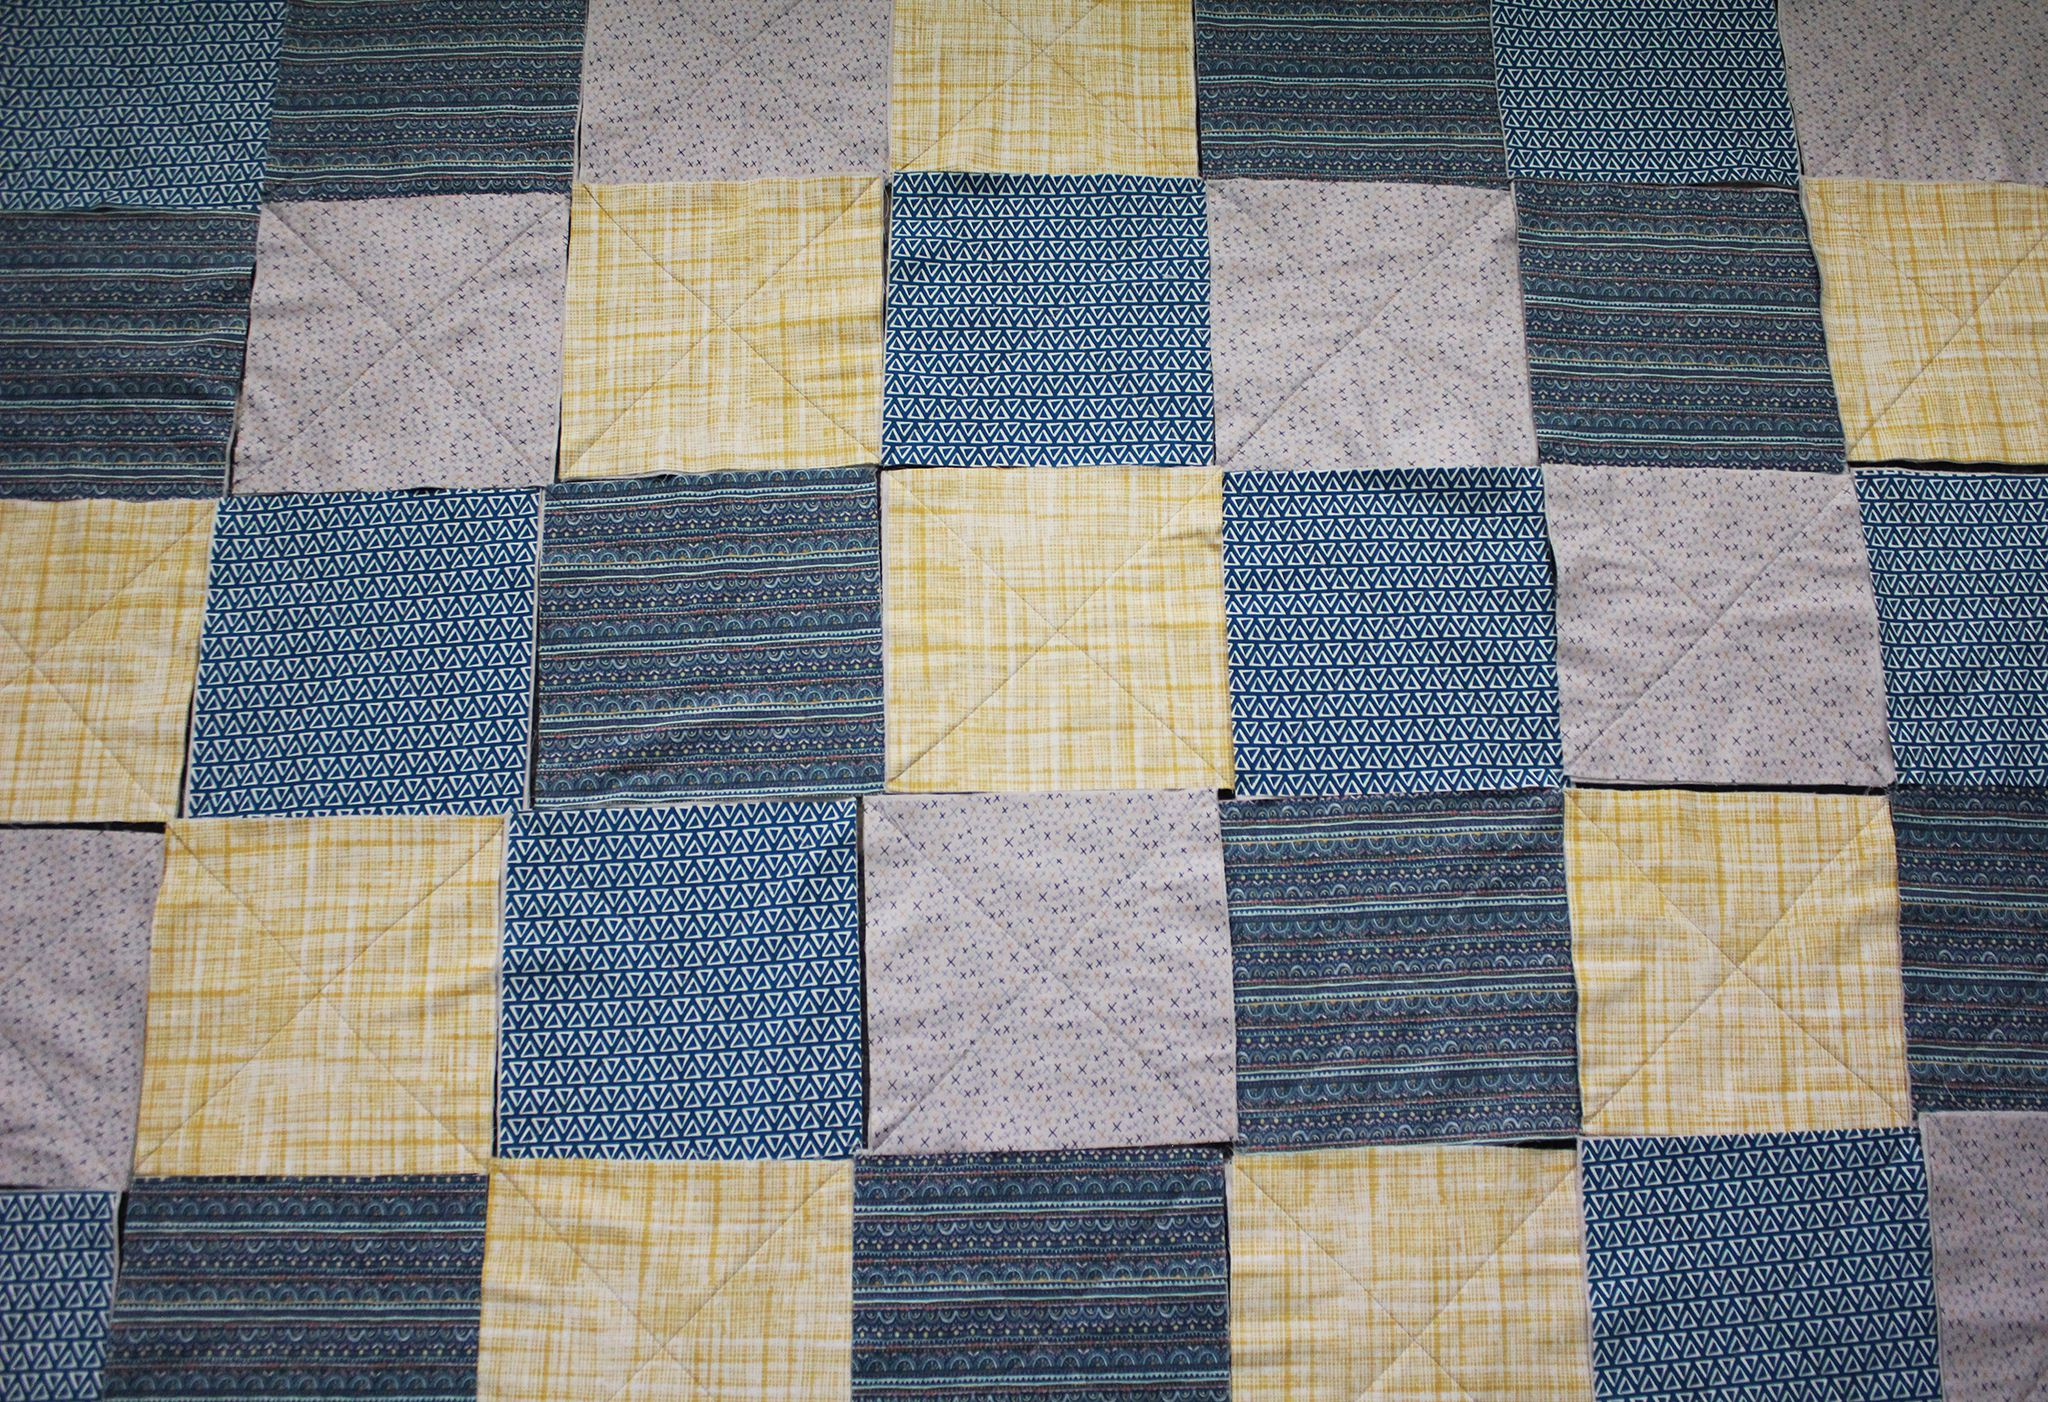 Quilt squares in a random pattern